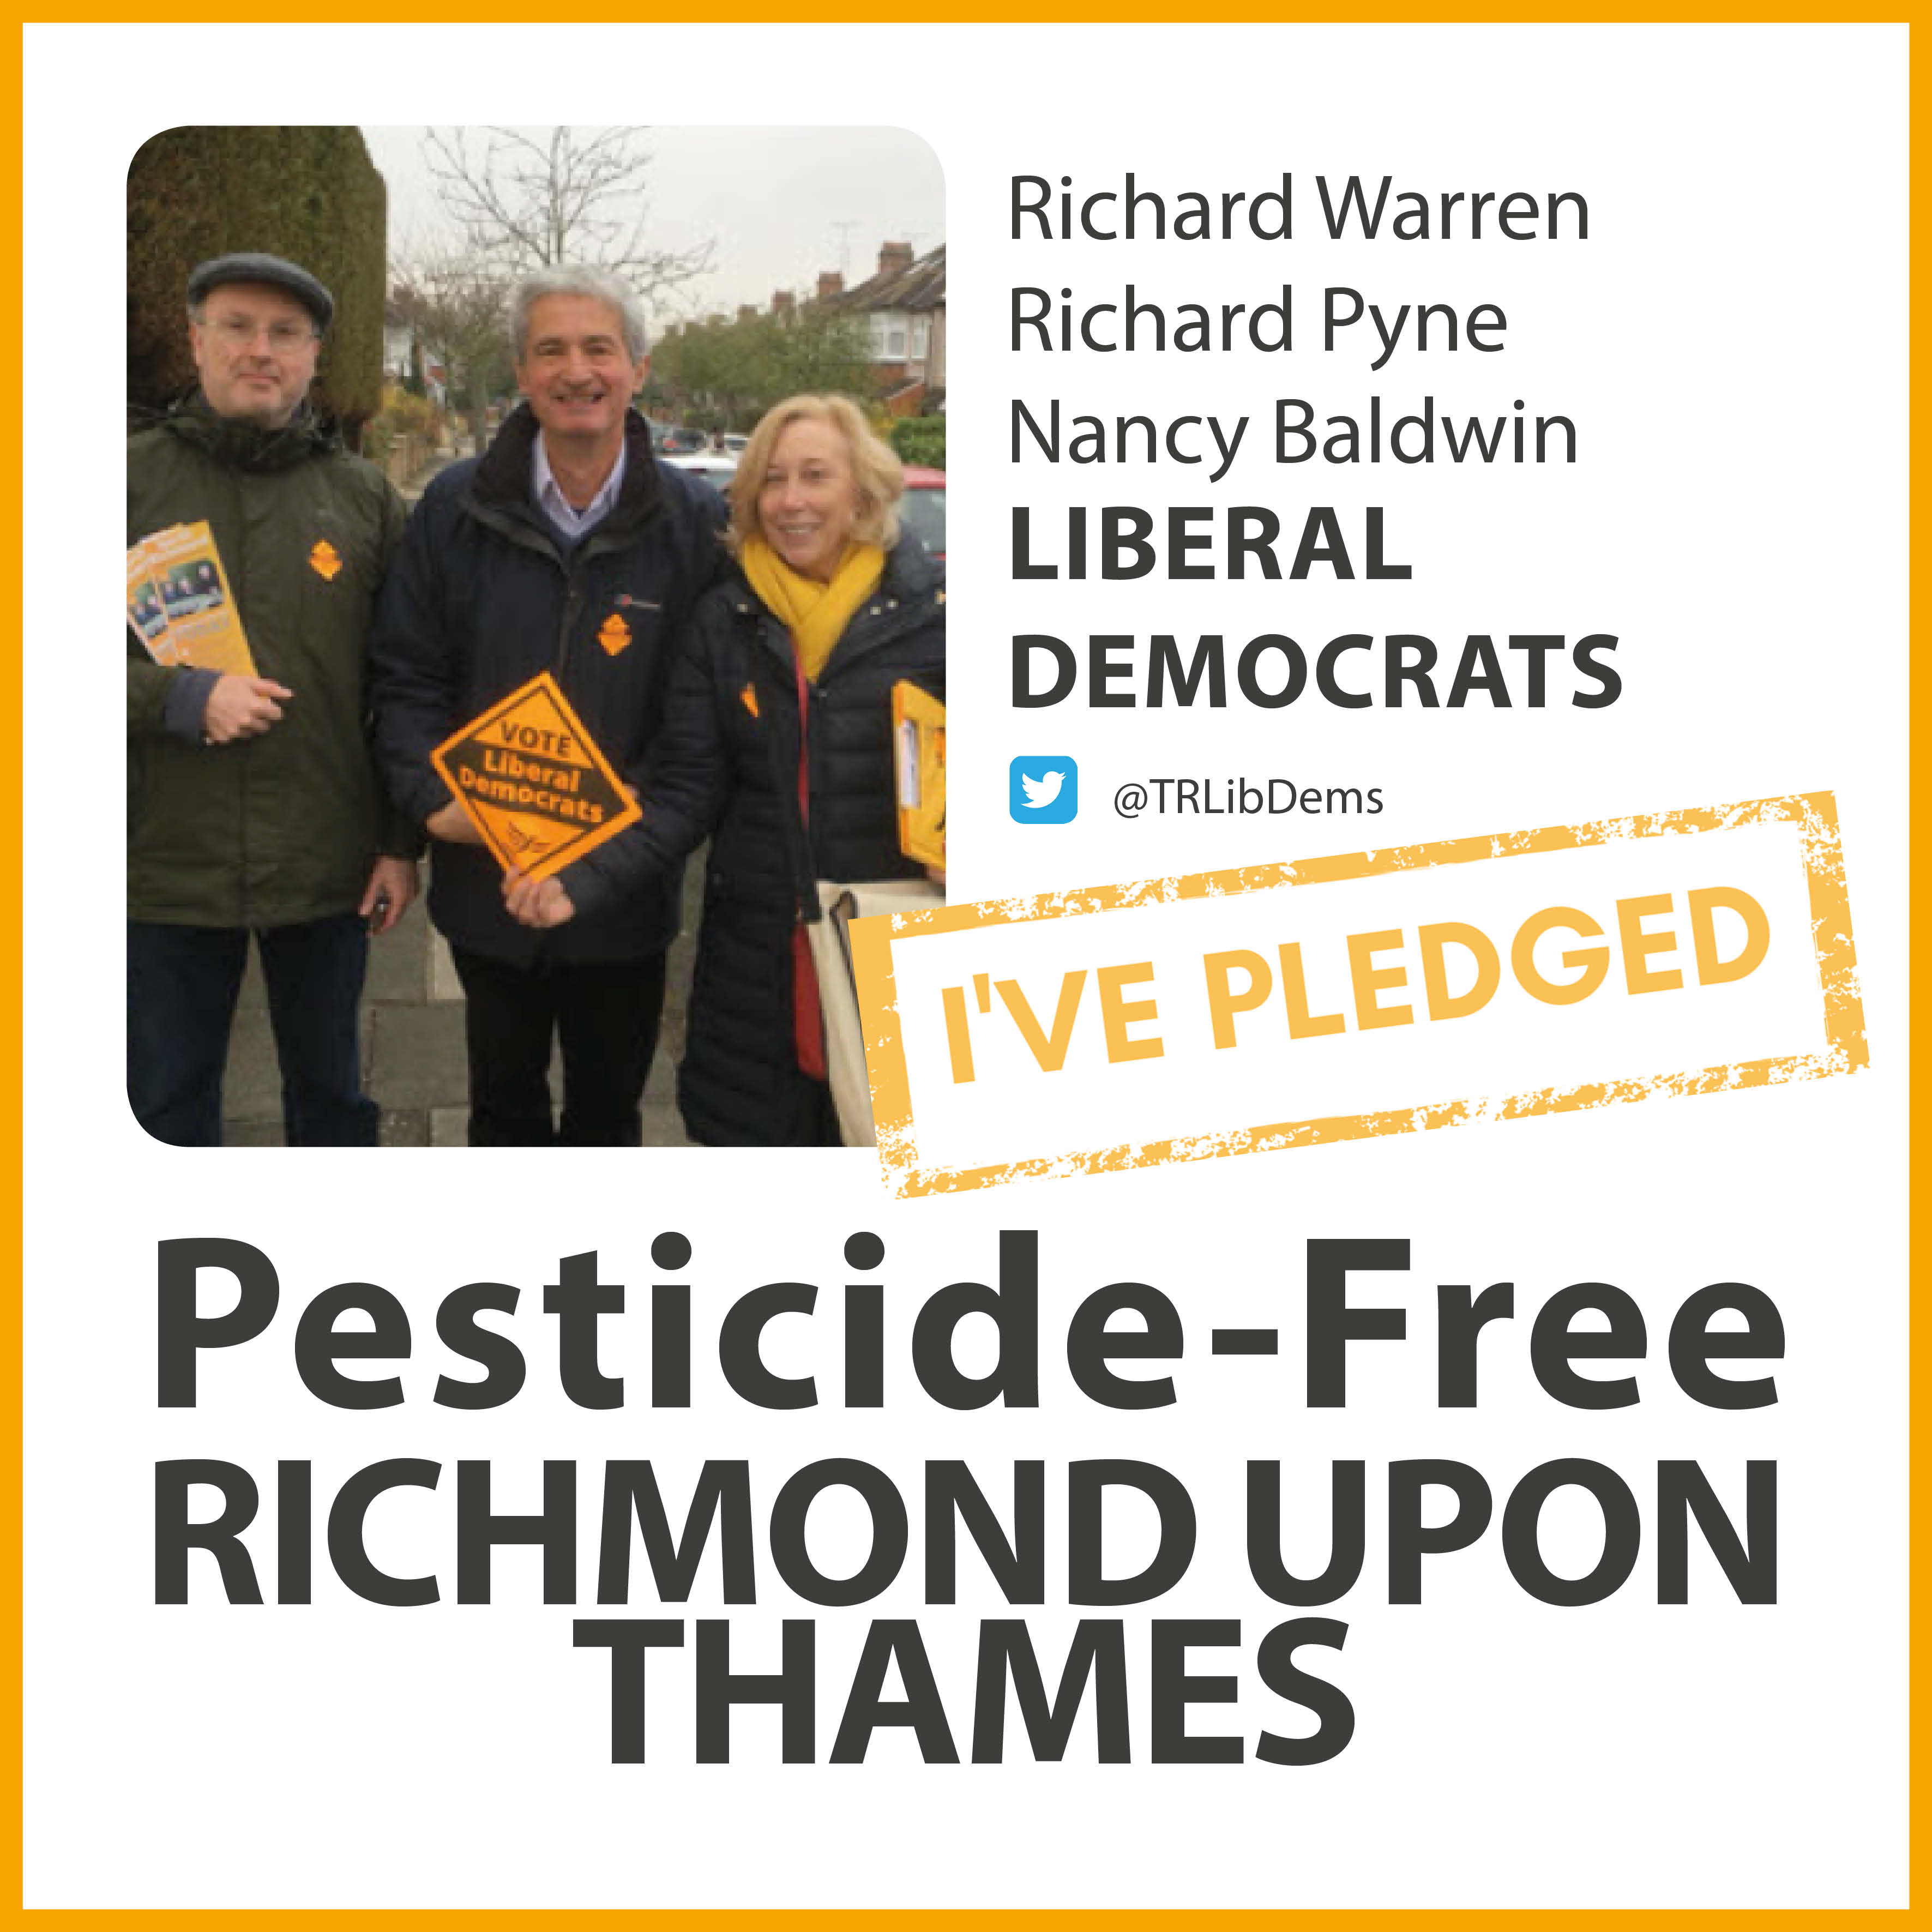 North Richmond Lib Dems have taken the pesticide-free pledge